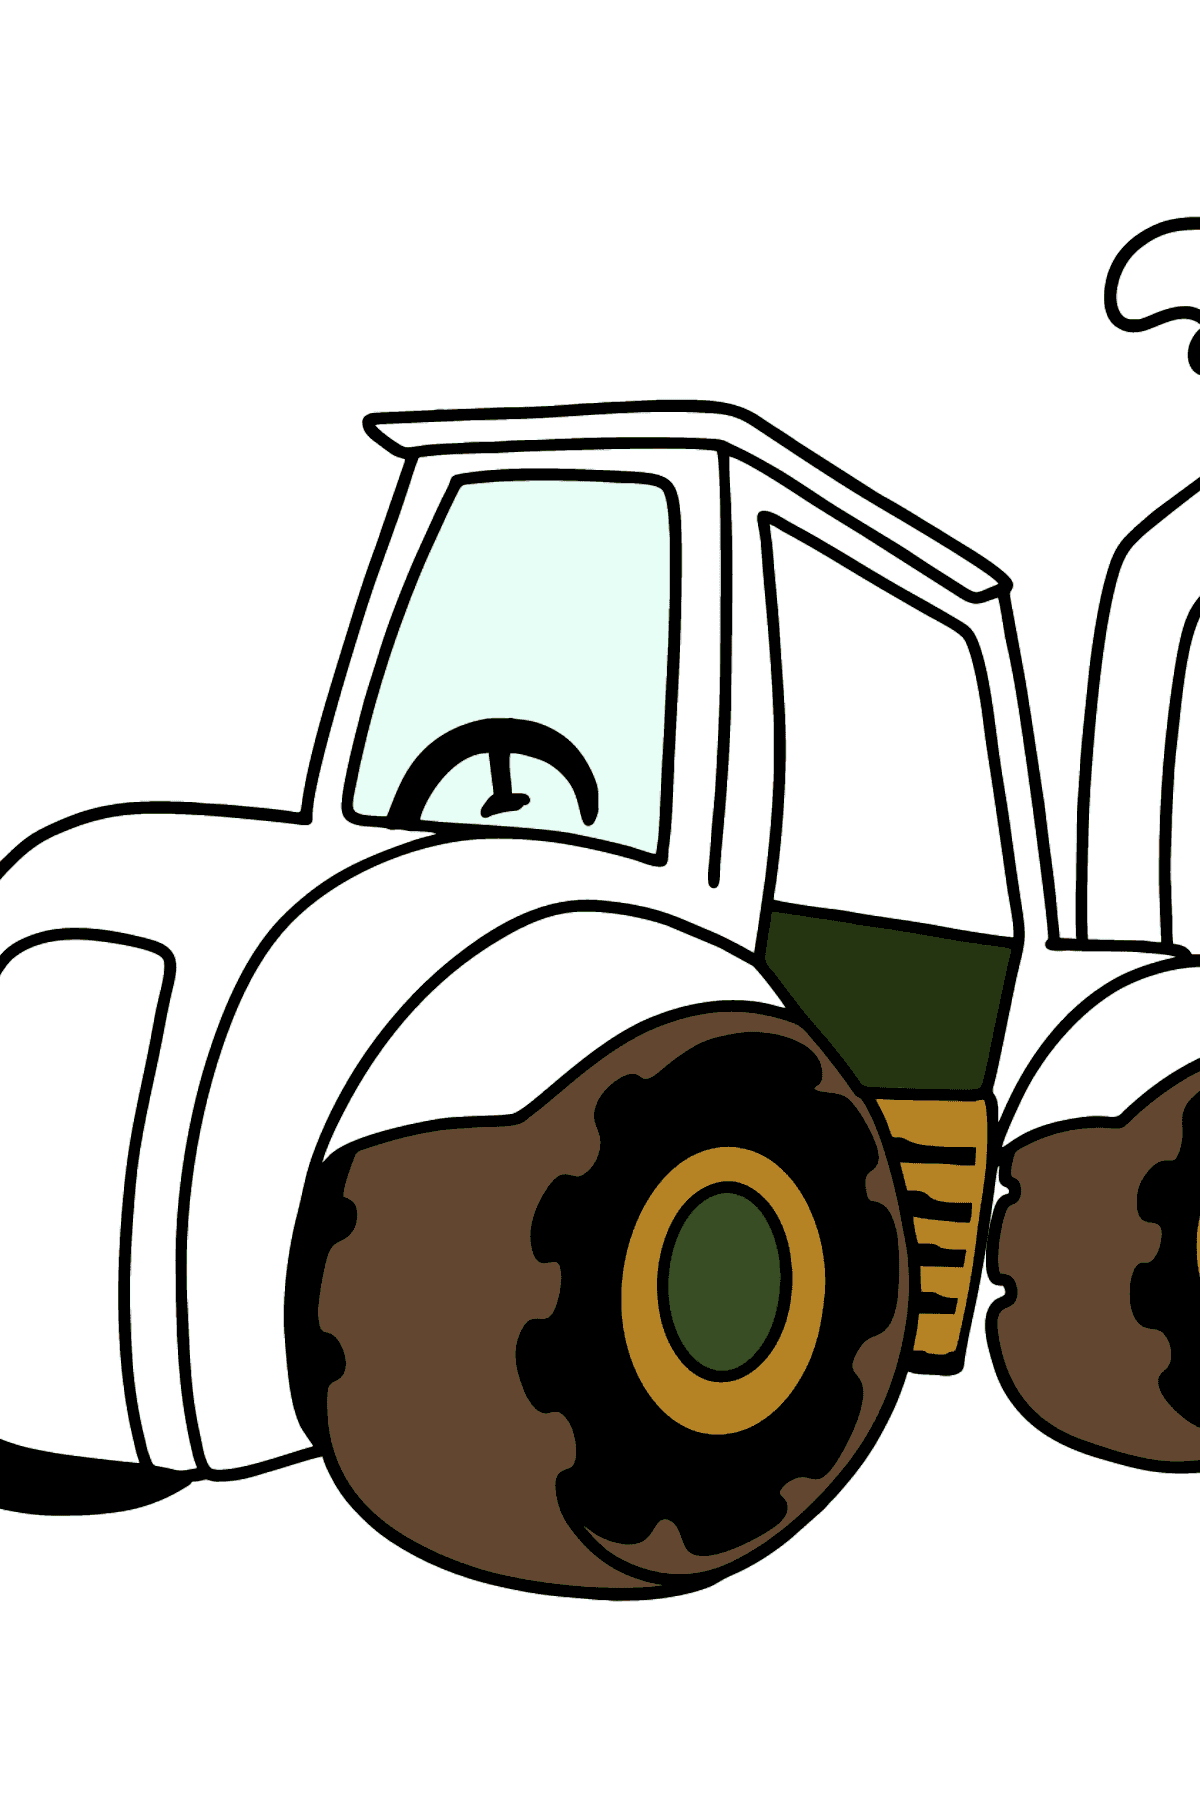 Tractor coloring page - Coloring Pages for Kids